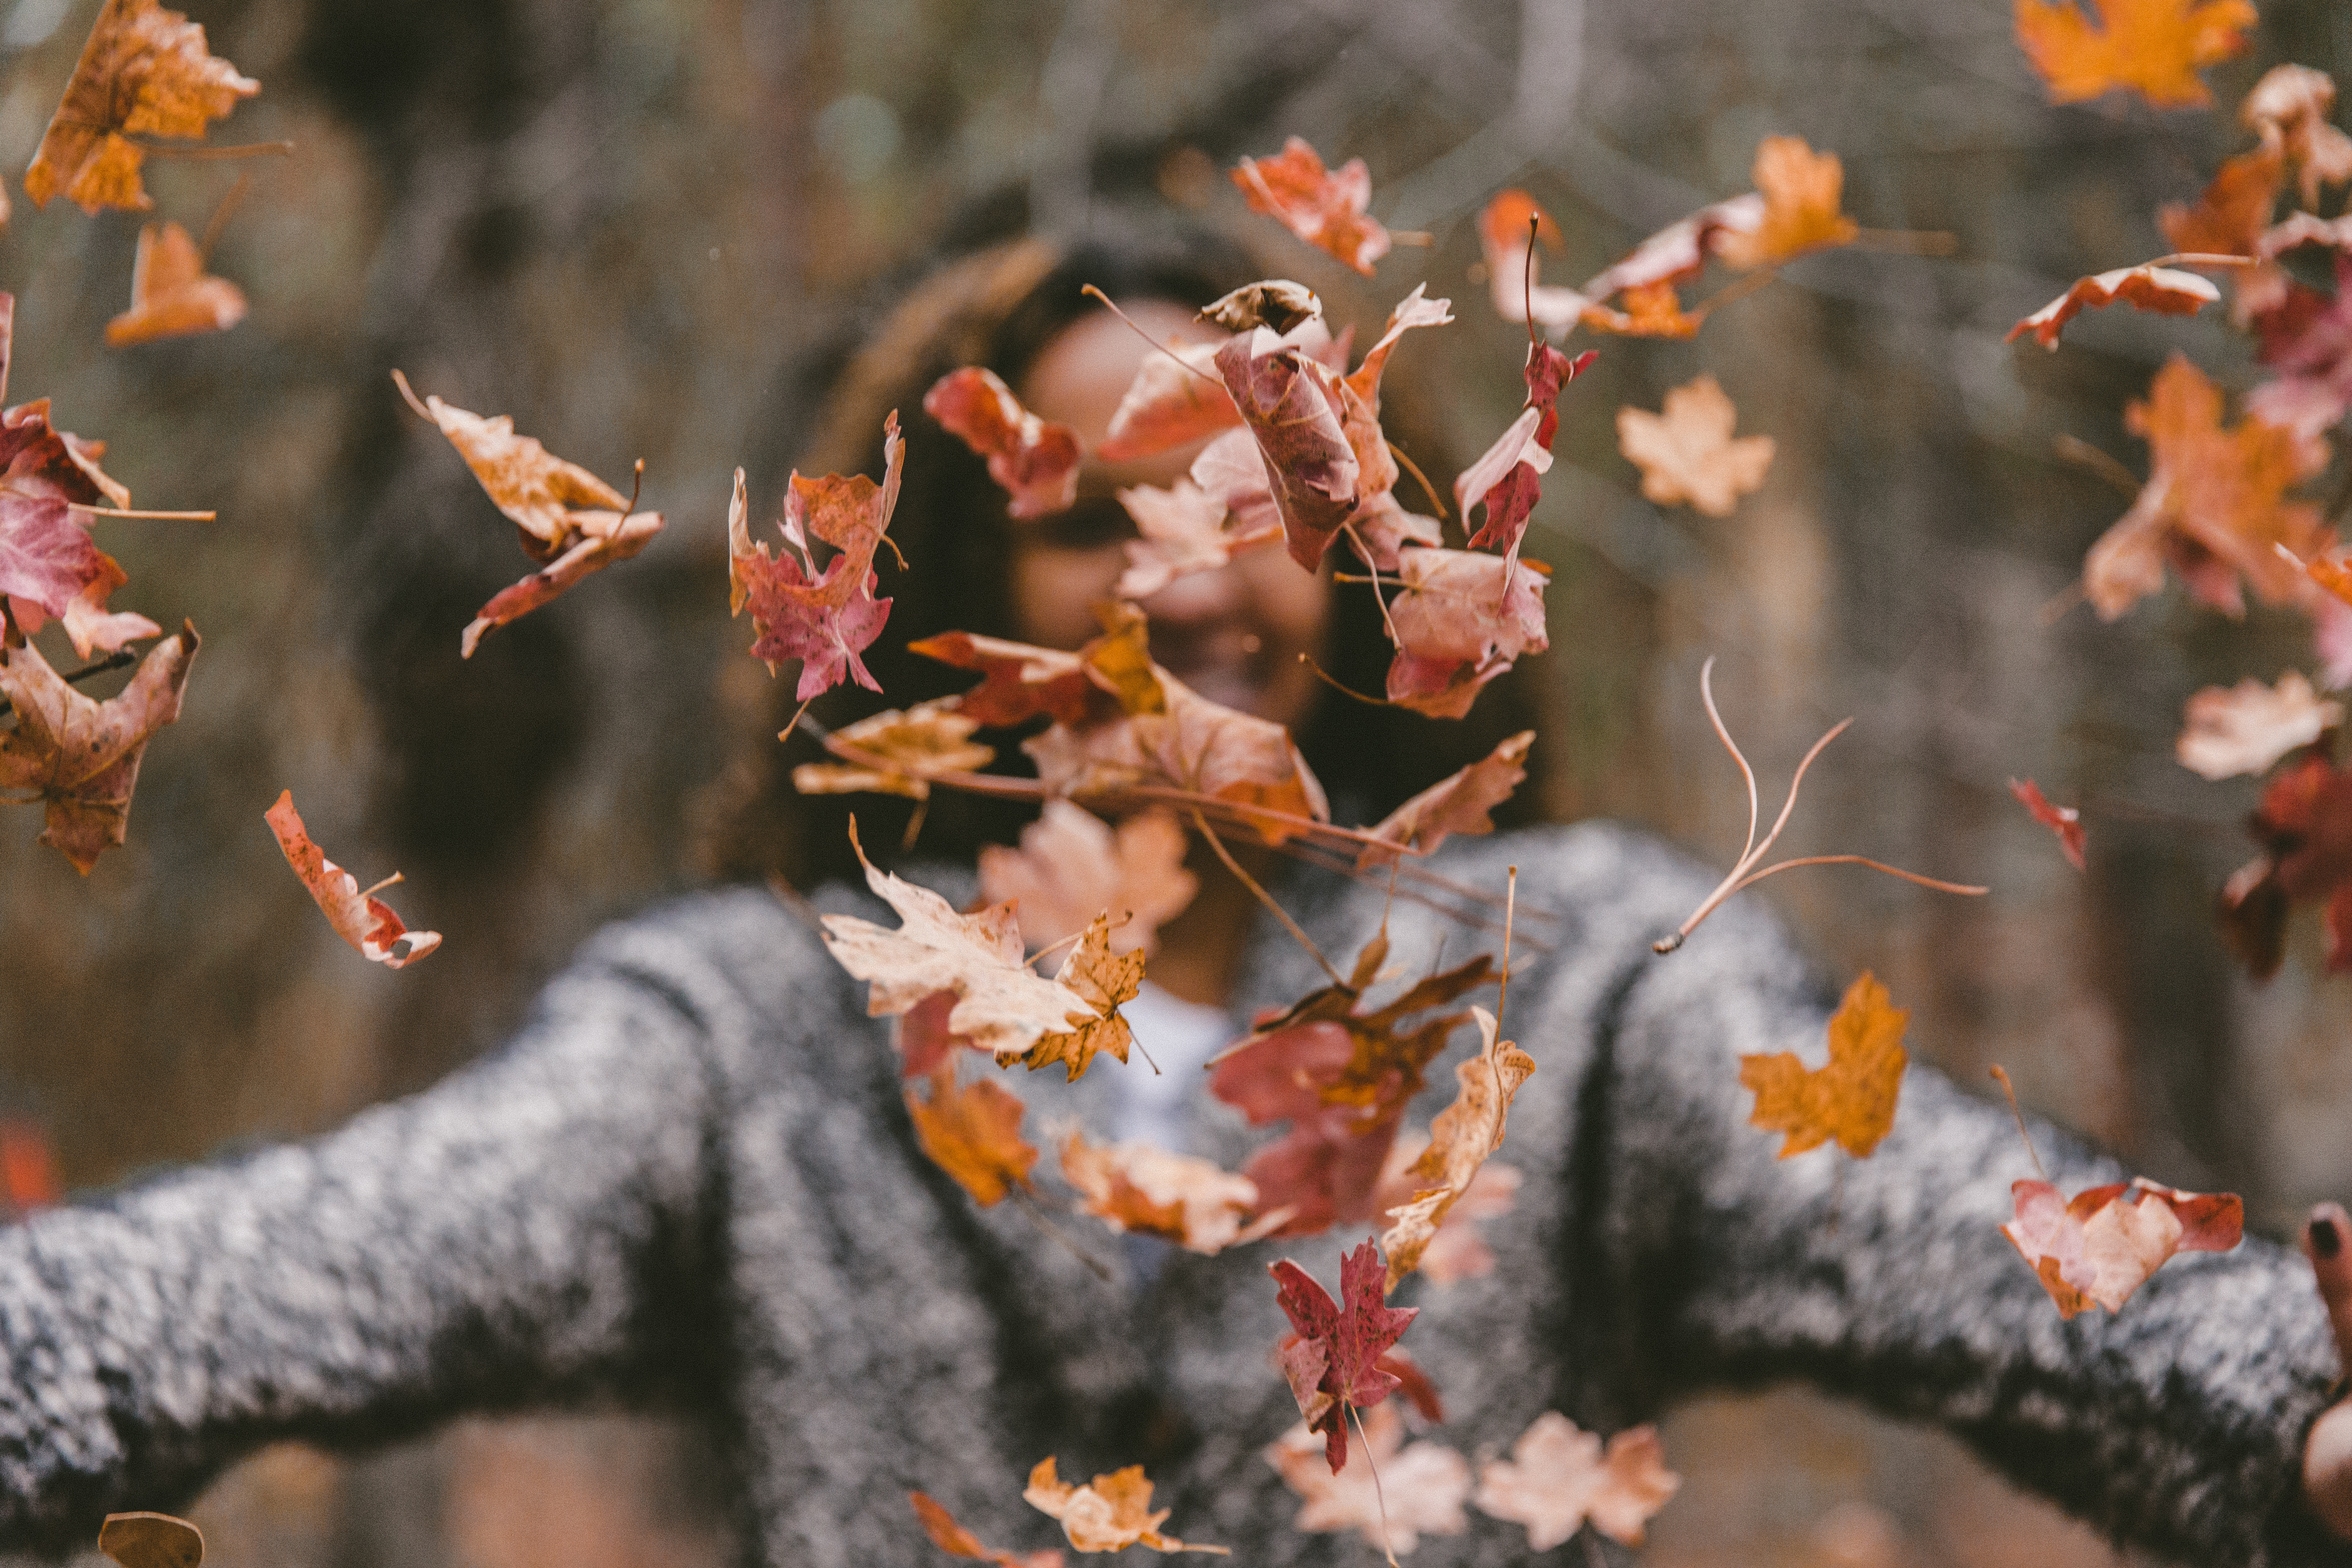 tossing autumn leaves in the air